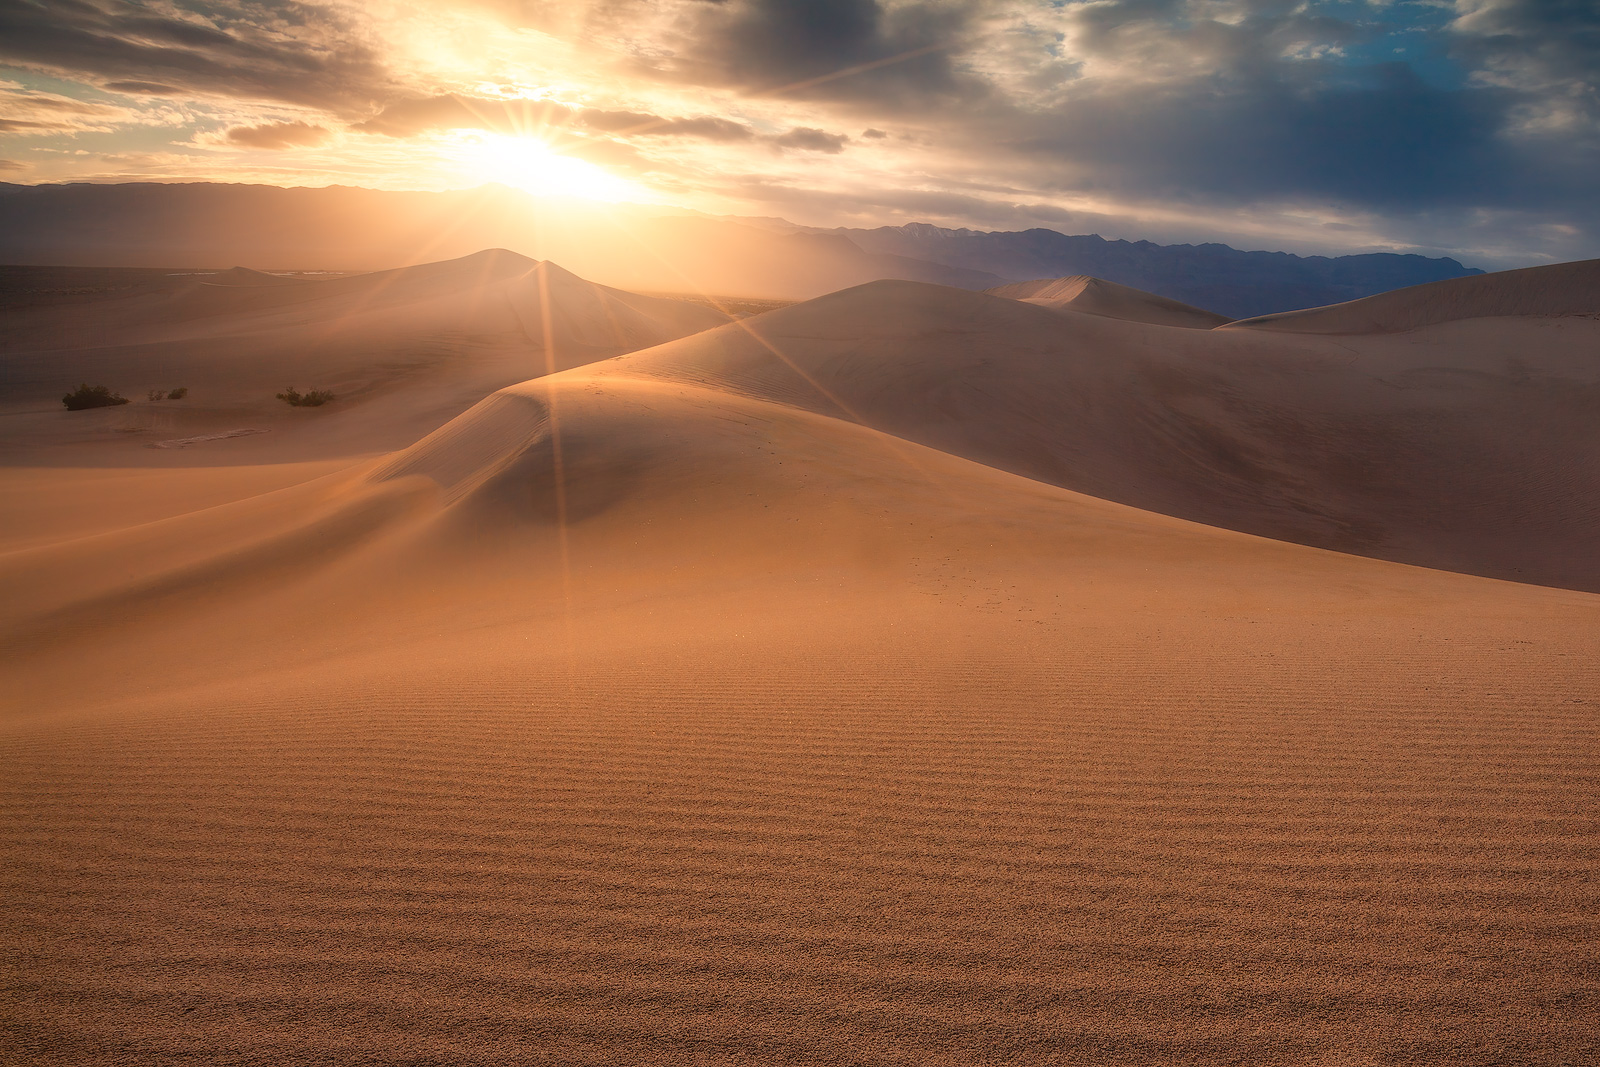 america,california,death valley,death valley national park,dune,dunes,evening,mesquite dunes,north america,sunset,united states,us,usa,west, photo